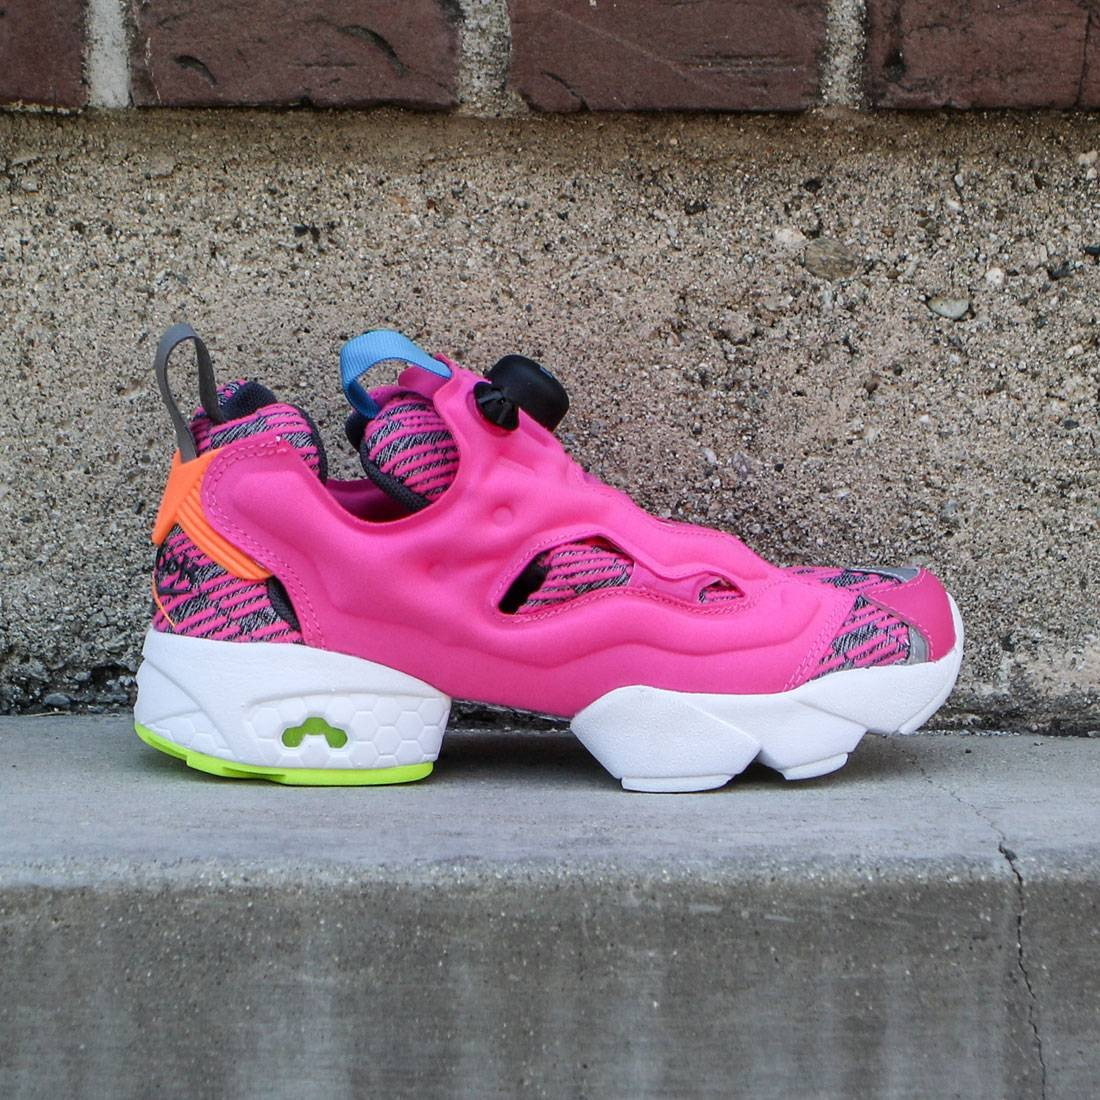 Reebok Women InstaPump Fury Celebrate pink dynamic pink electric peach  solar yellow blue 3fe1c33a7